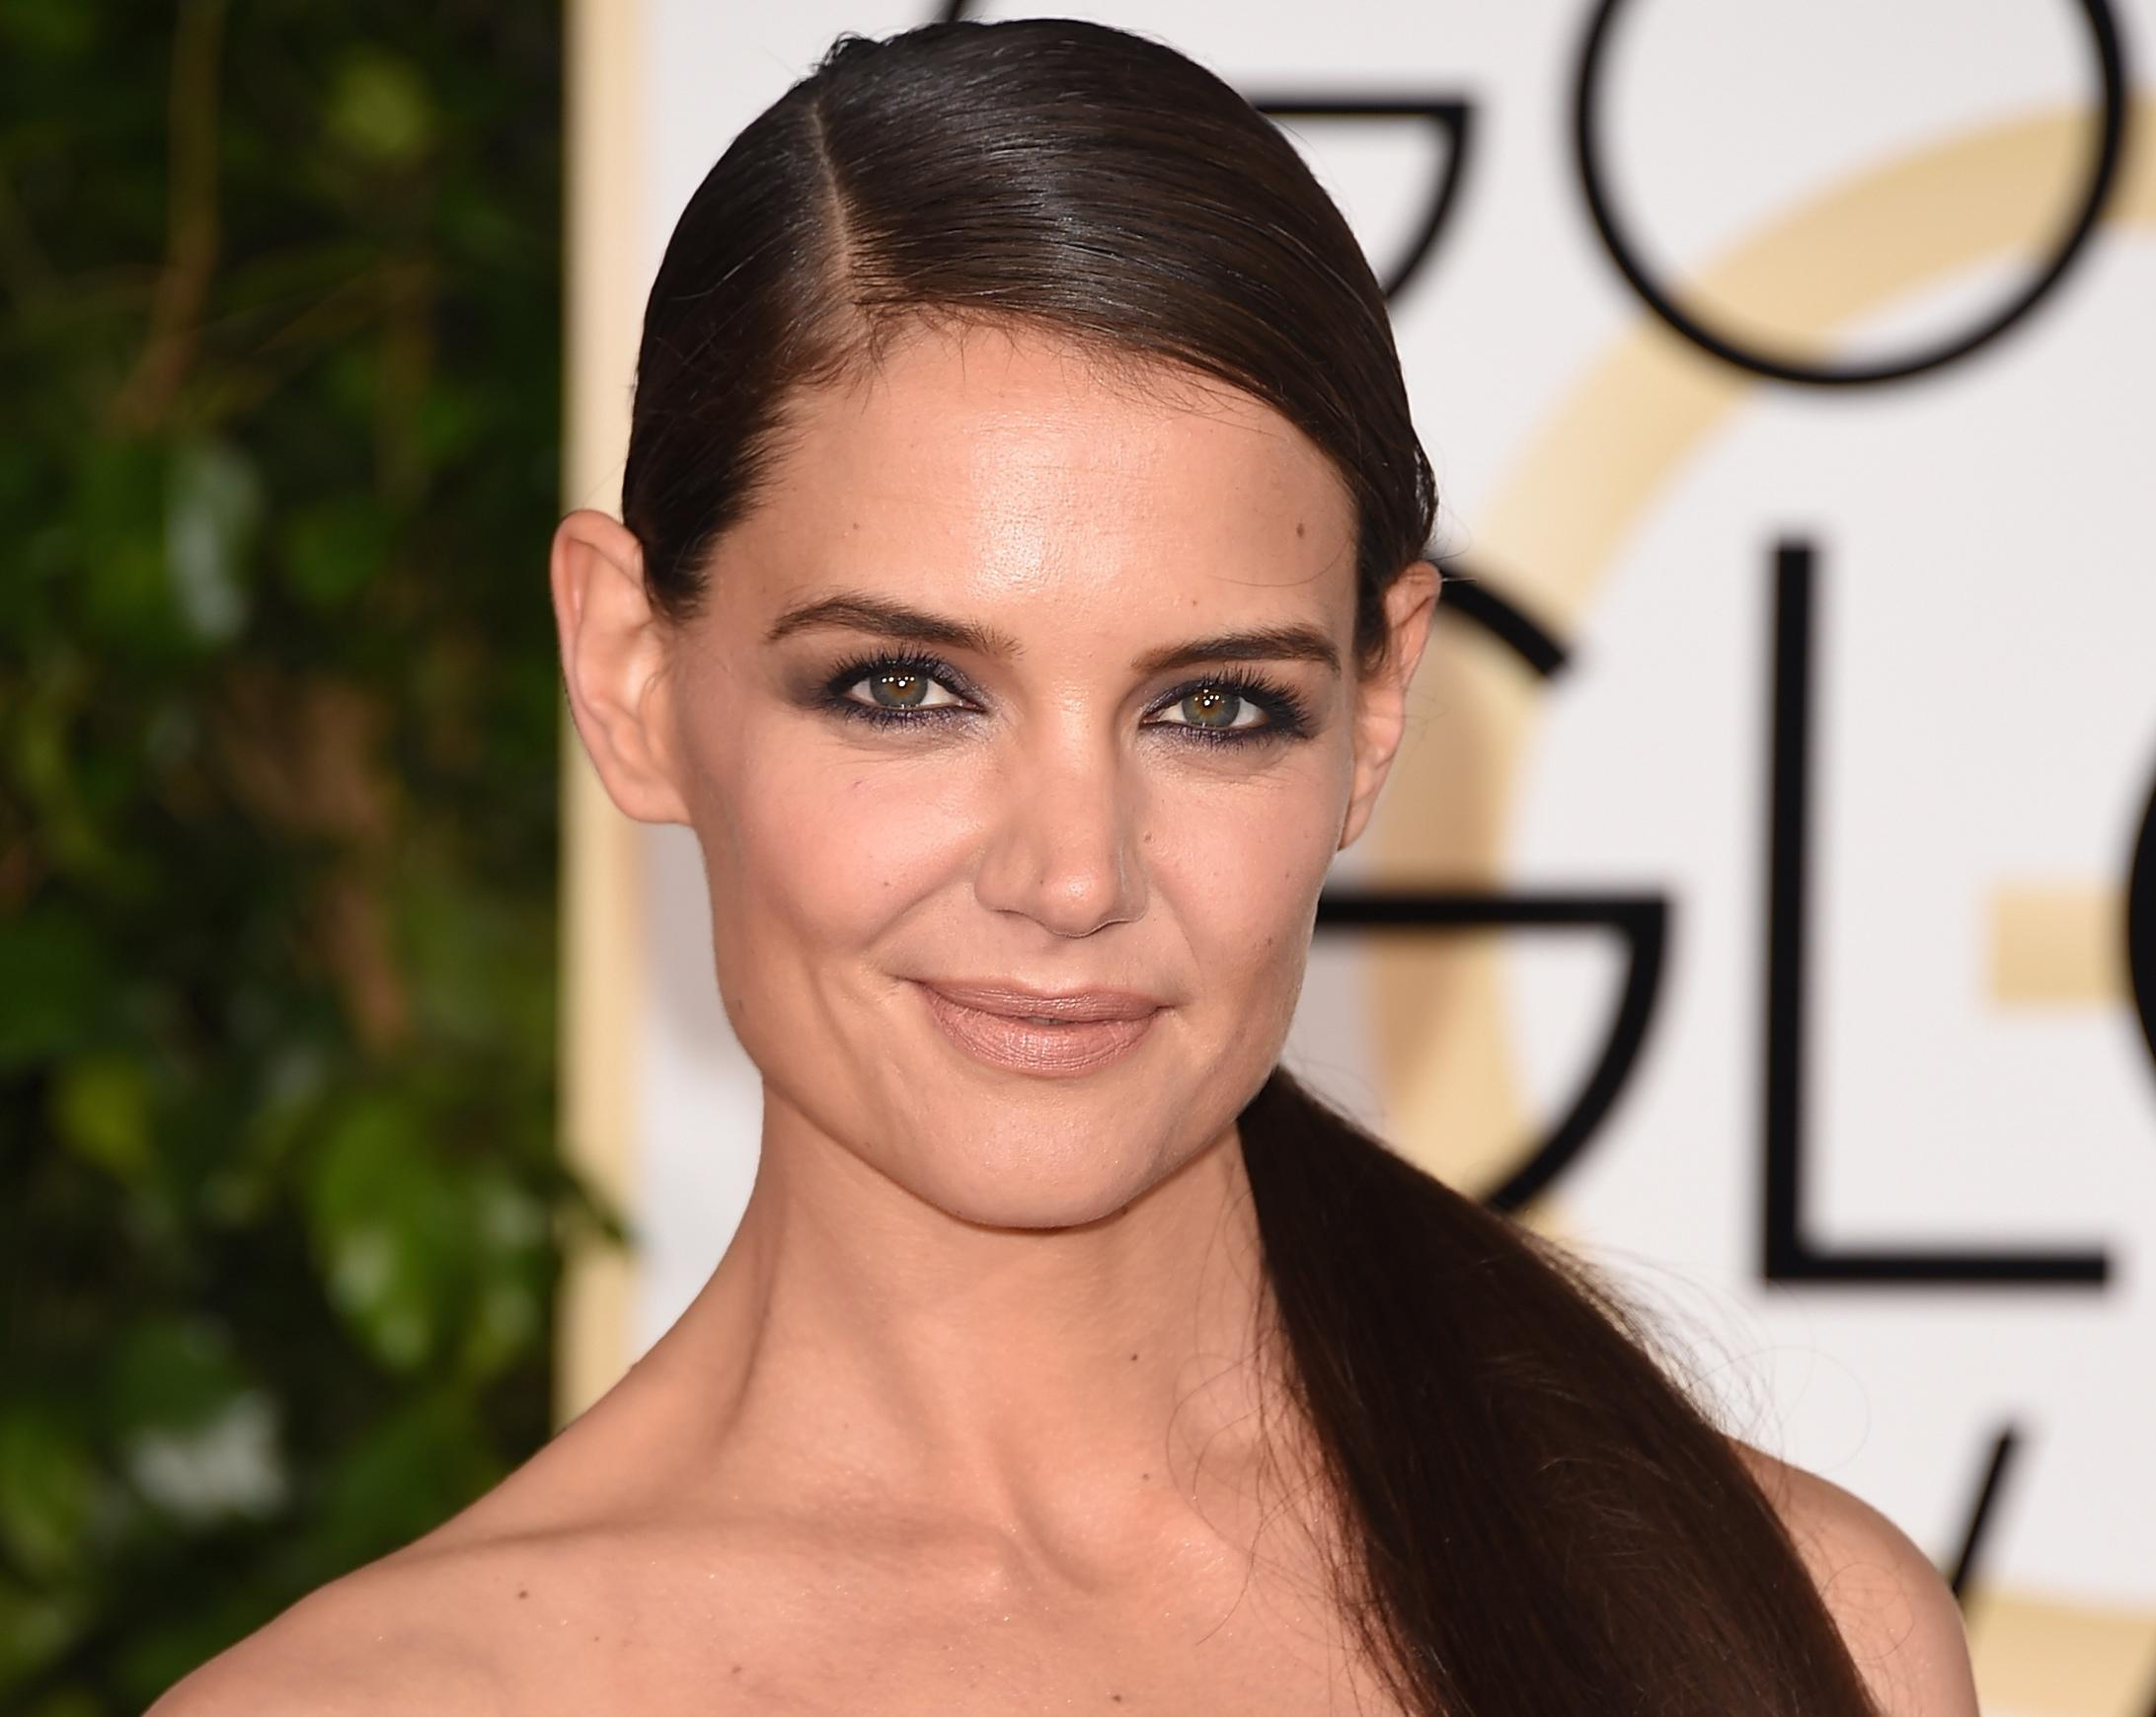 Katie Holmes Joins Showtime Drama 'Ray Donovan'